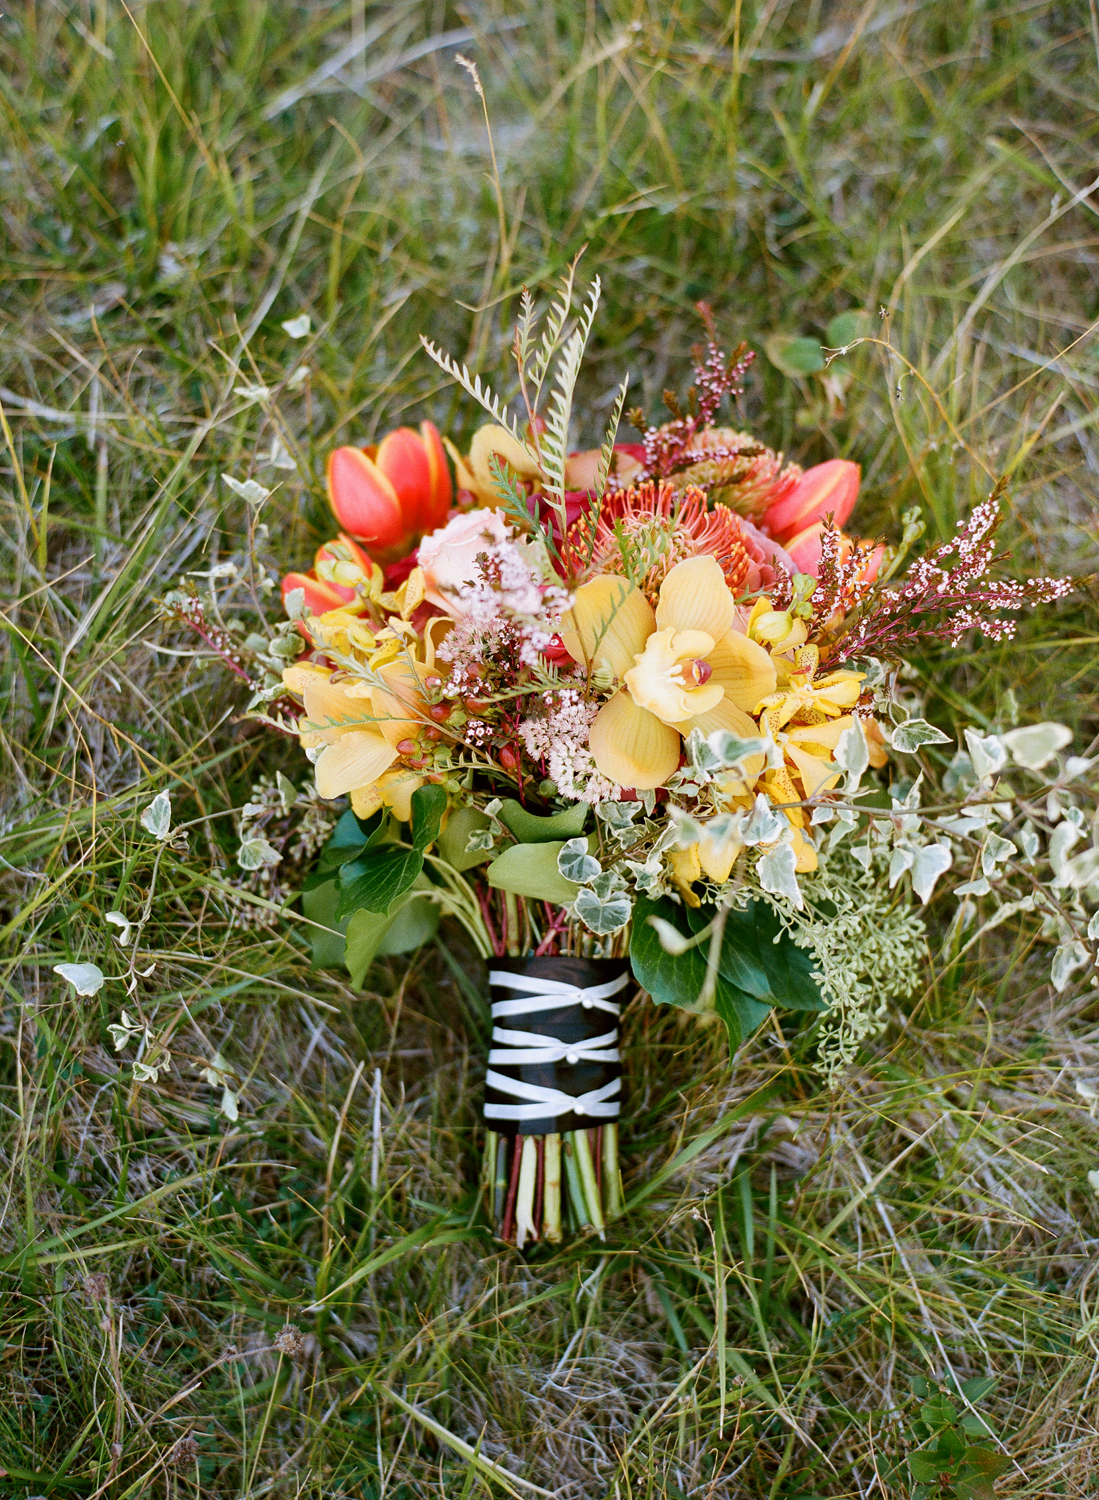 Fall bridal bouquet with red, yellow, green flowers